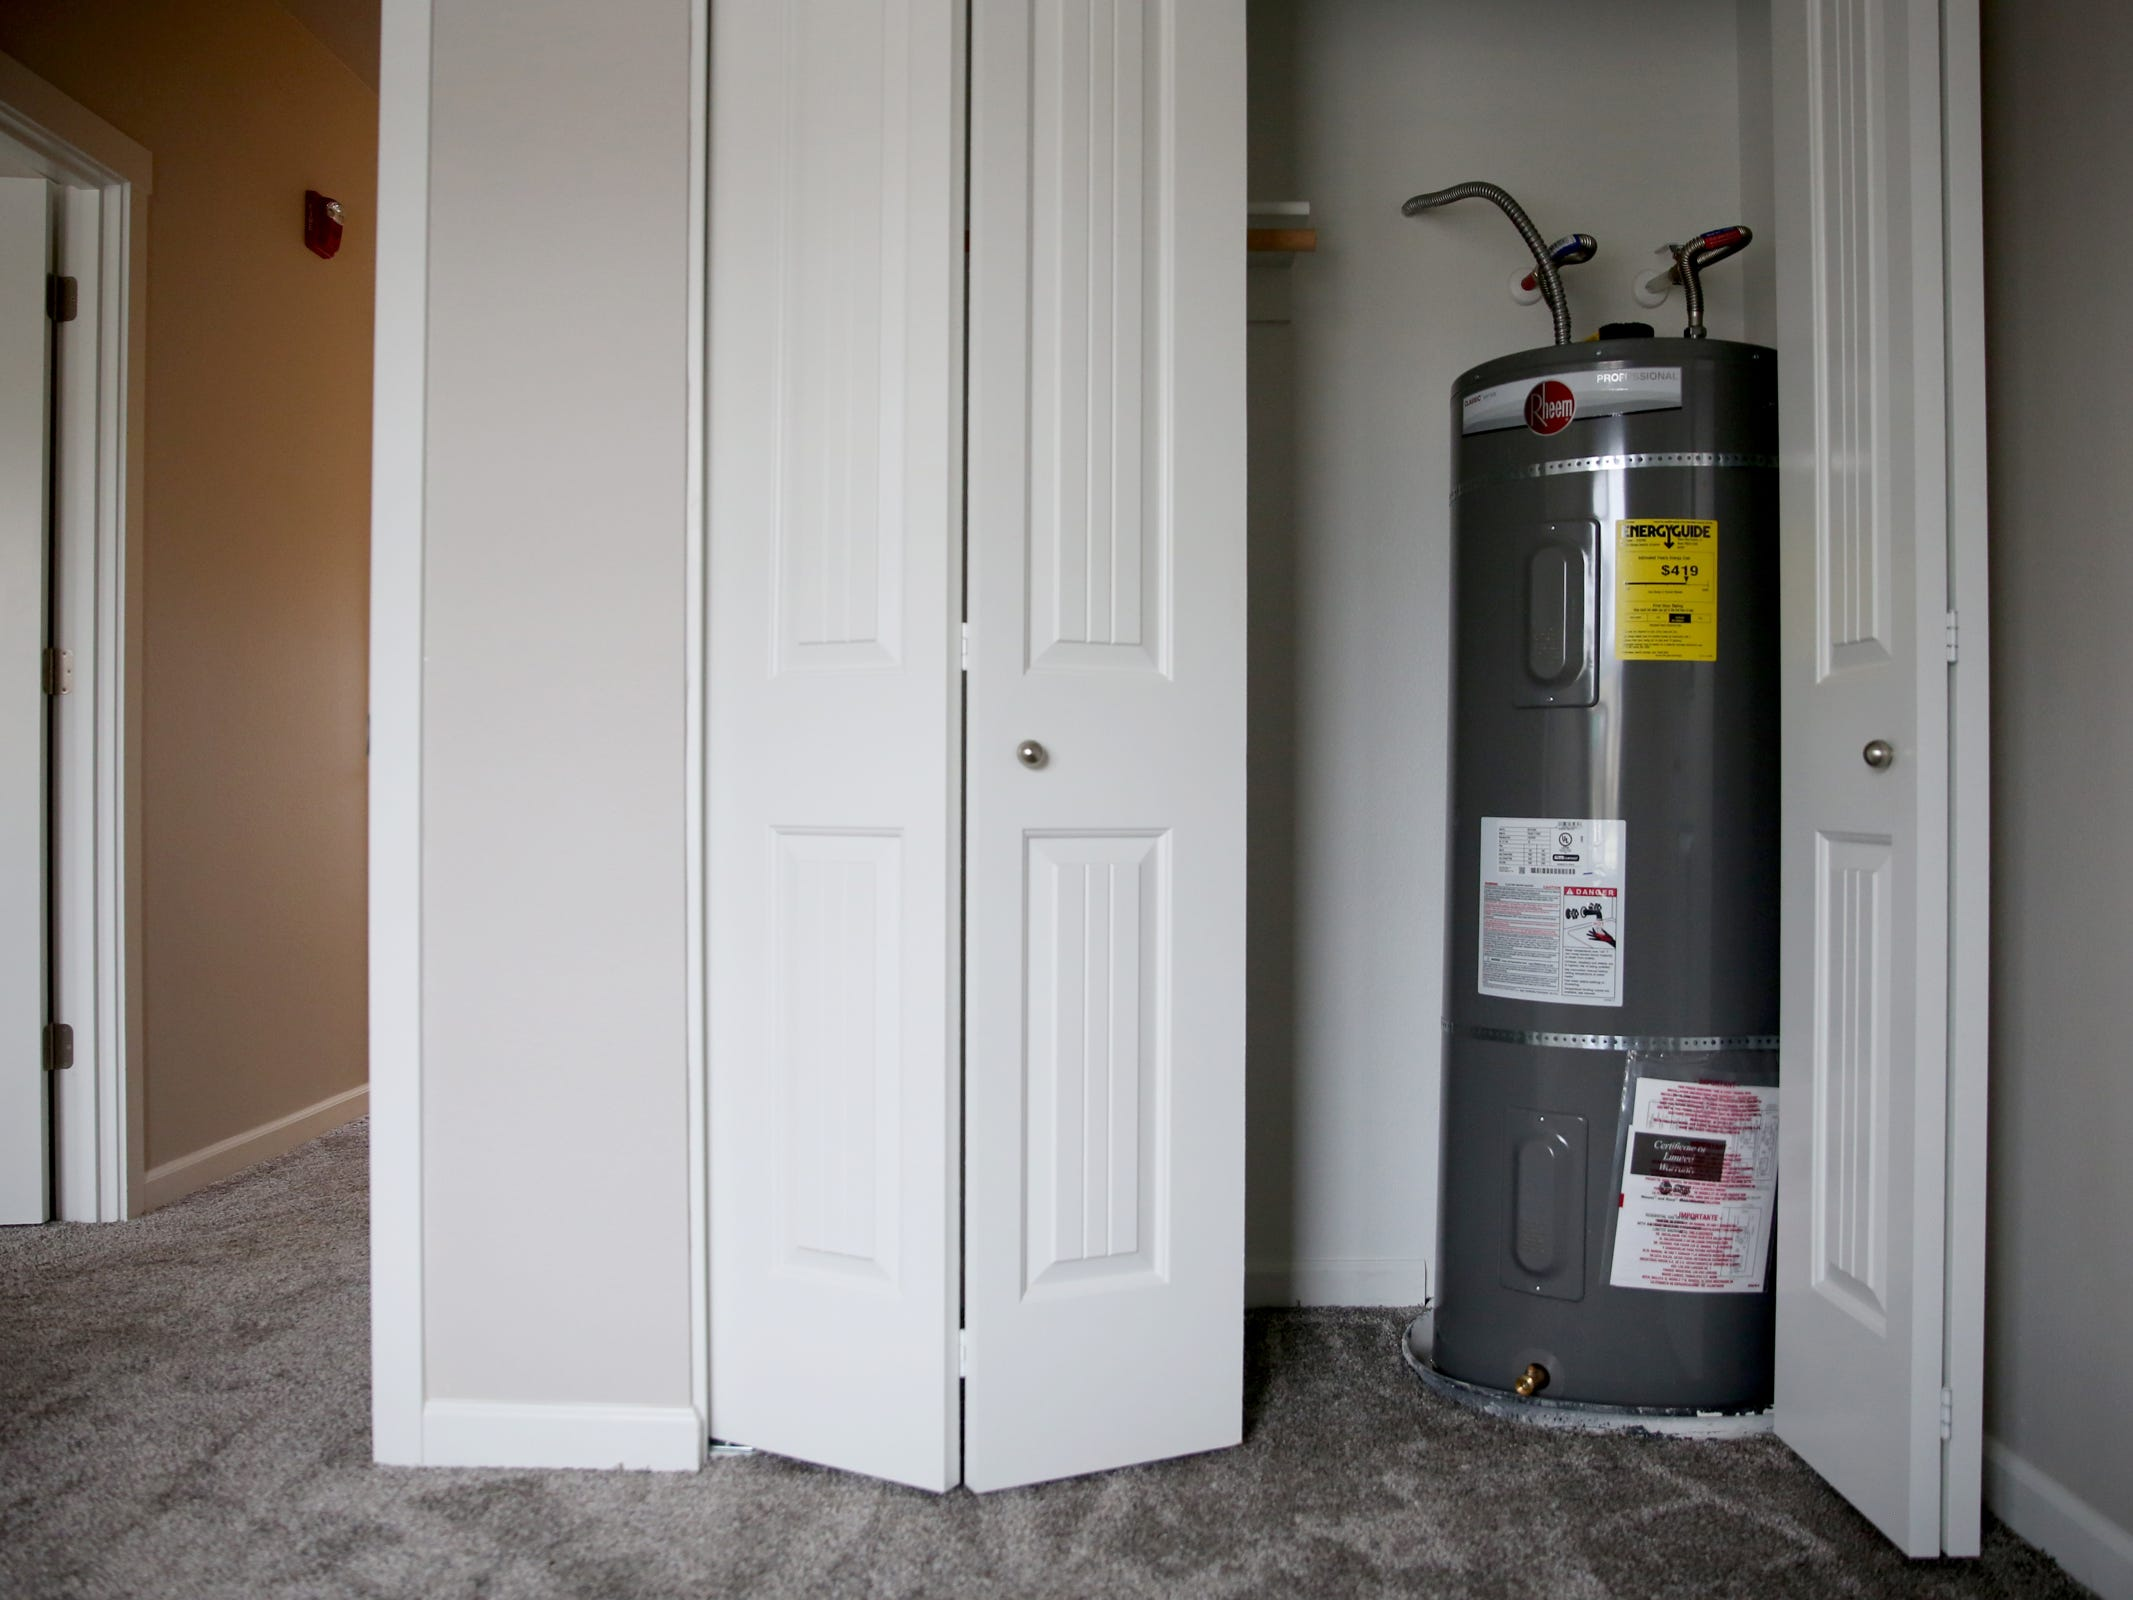 A water heater a bedroom closet at the Cornerstone Apartments in Salem on Wednesday, Jan. 16, 2019. The state is looking to reduce the energy burden for low-income Oregonians, including tenants at Cornerstone, who must live at or less than 60 percent of the area's median household income.